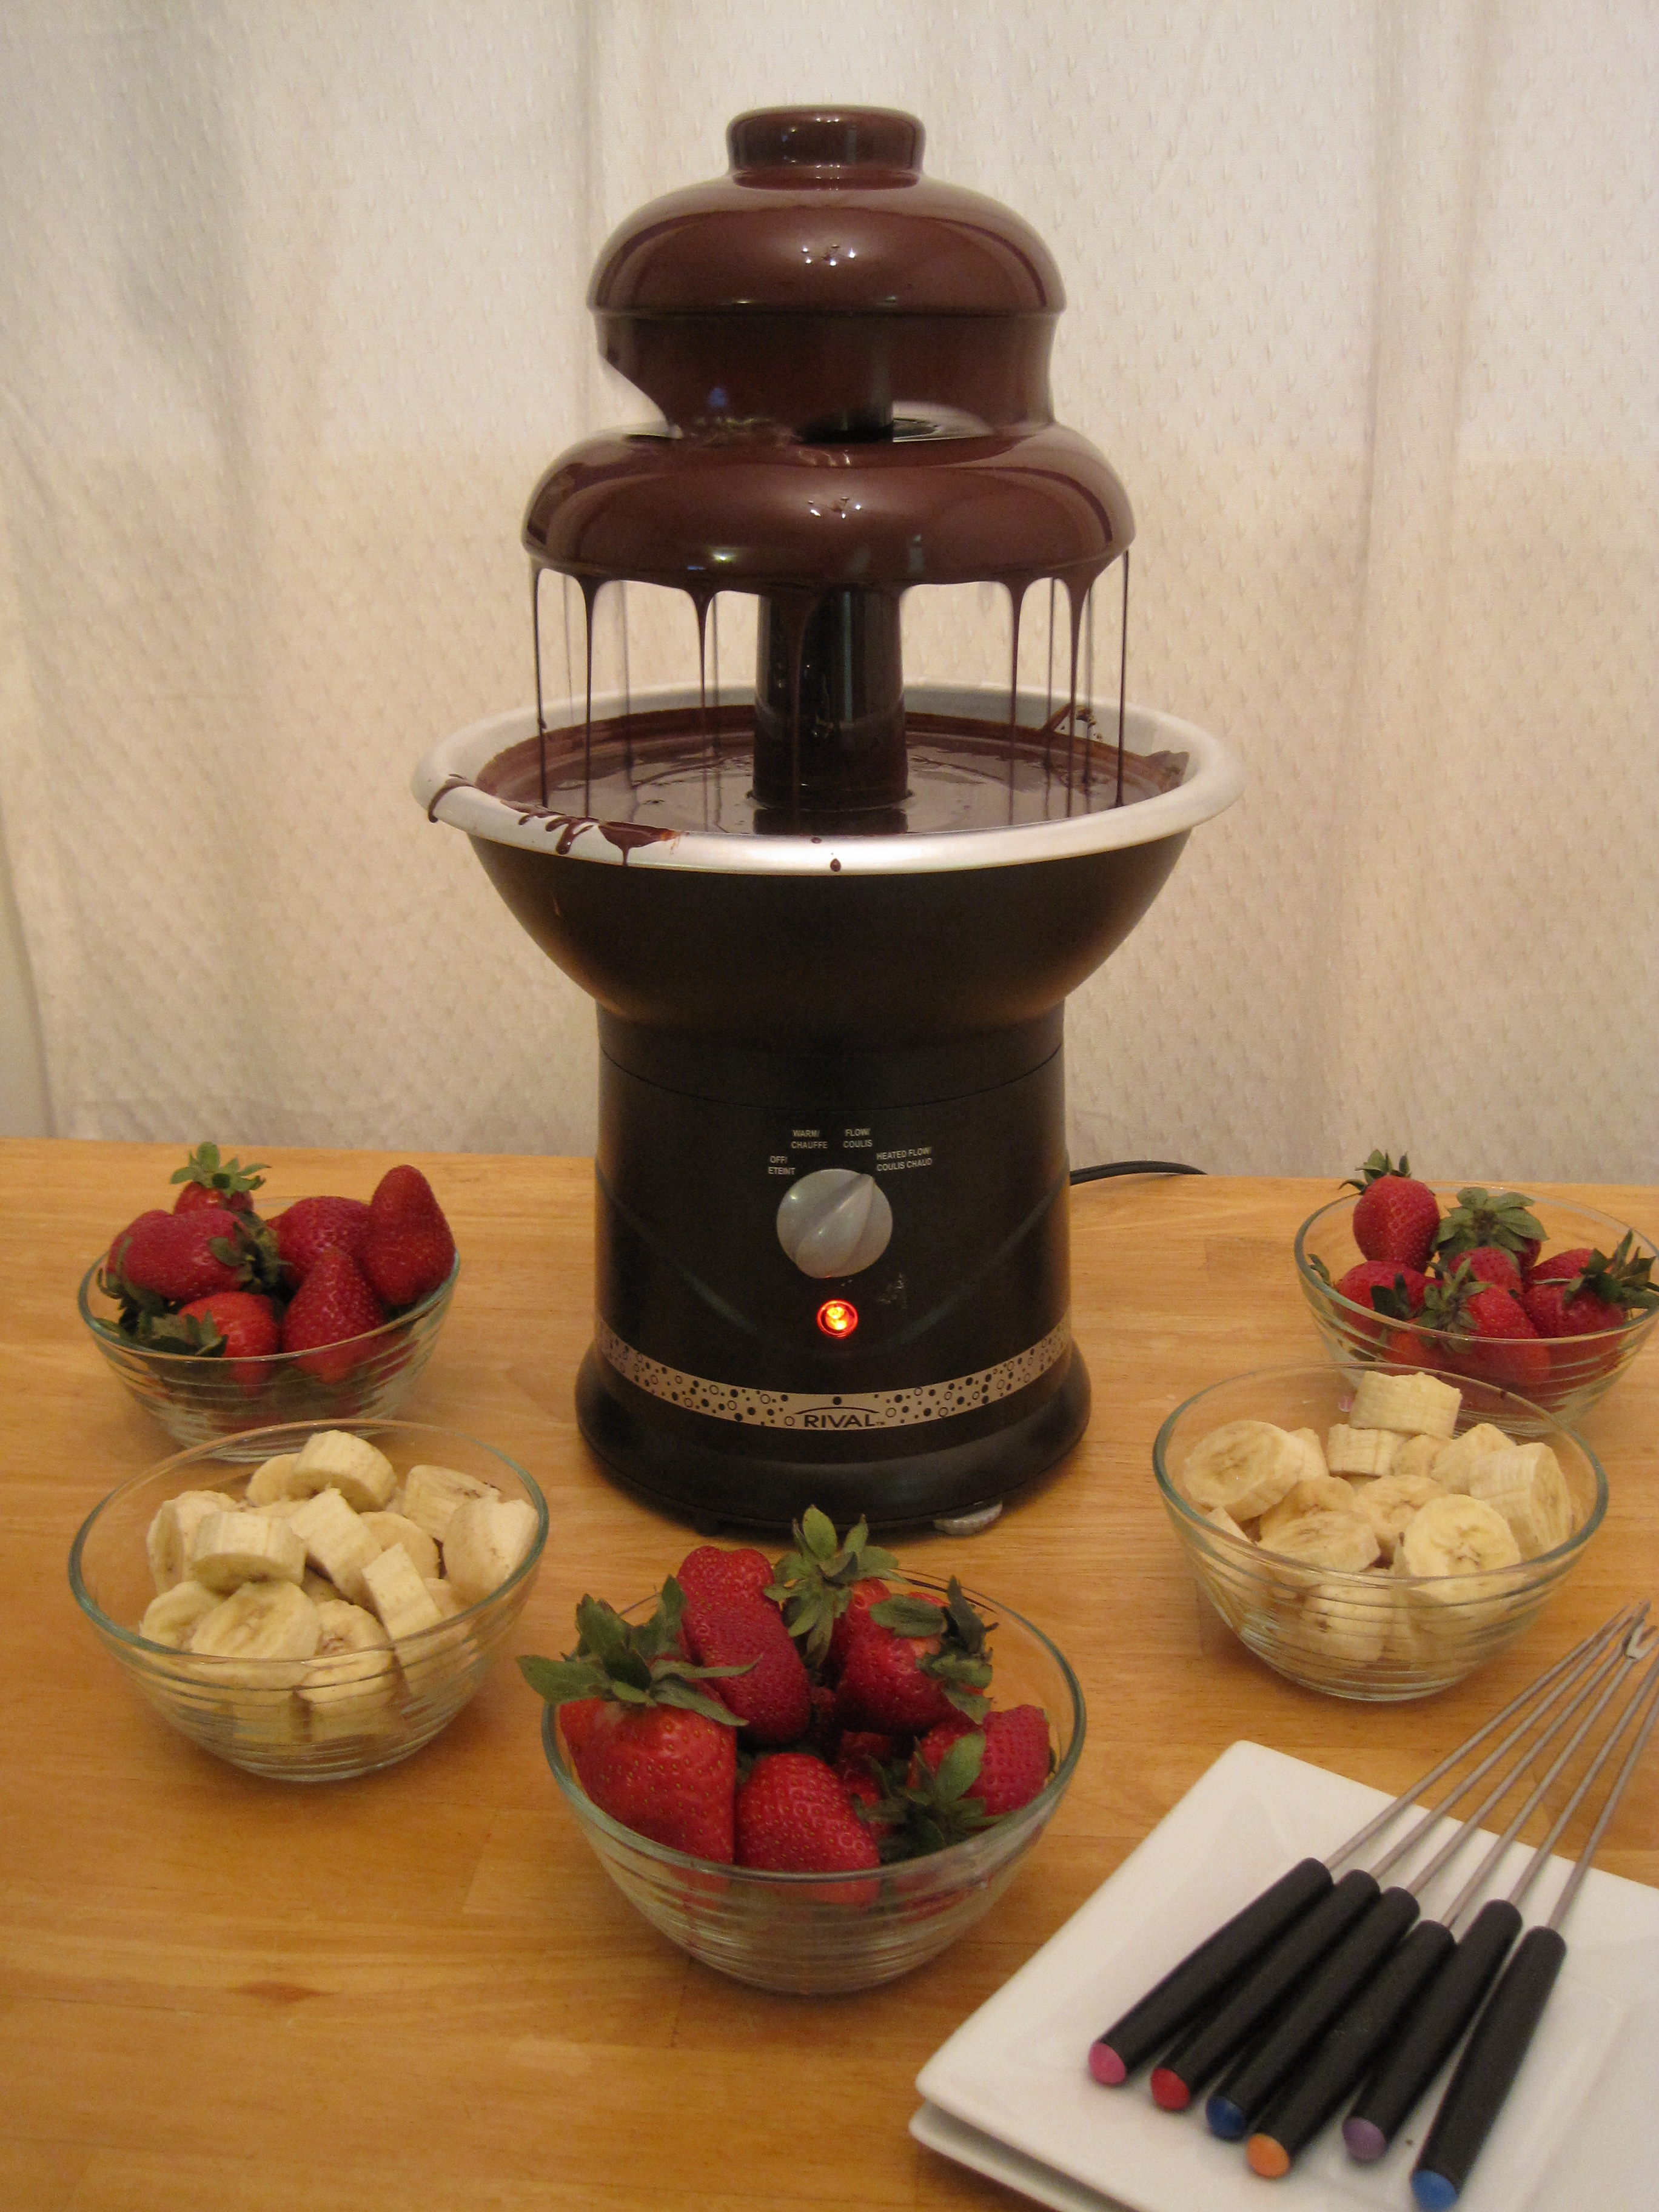 Chocolate Fountain (100th Post!) | Cooking with Alison